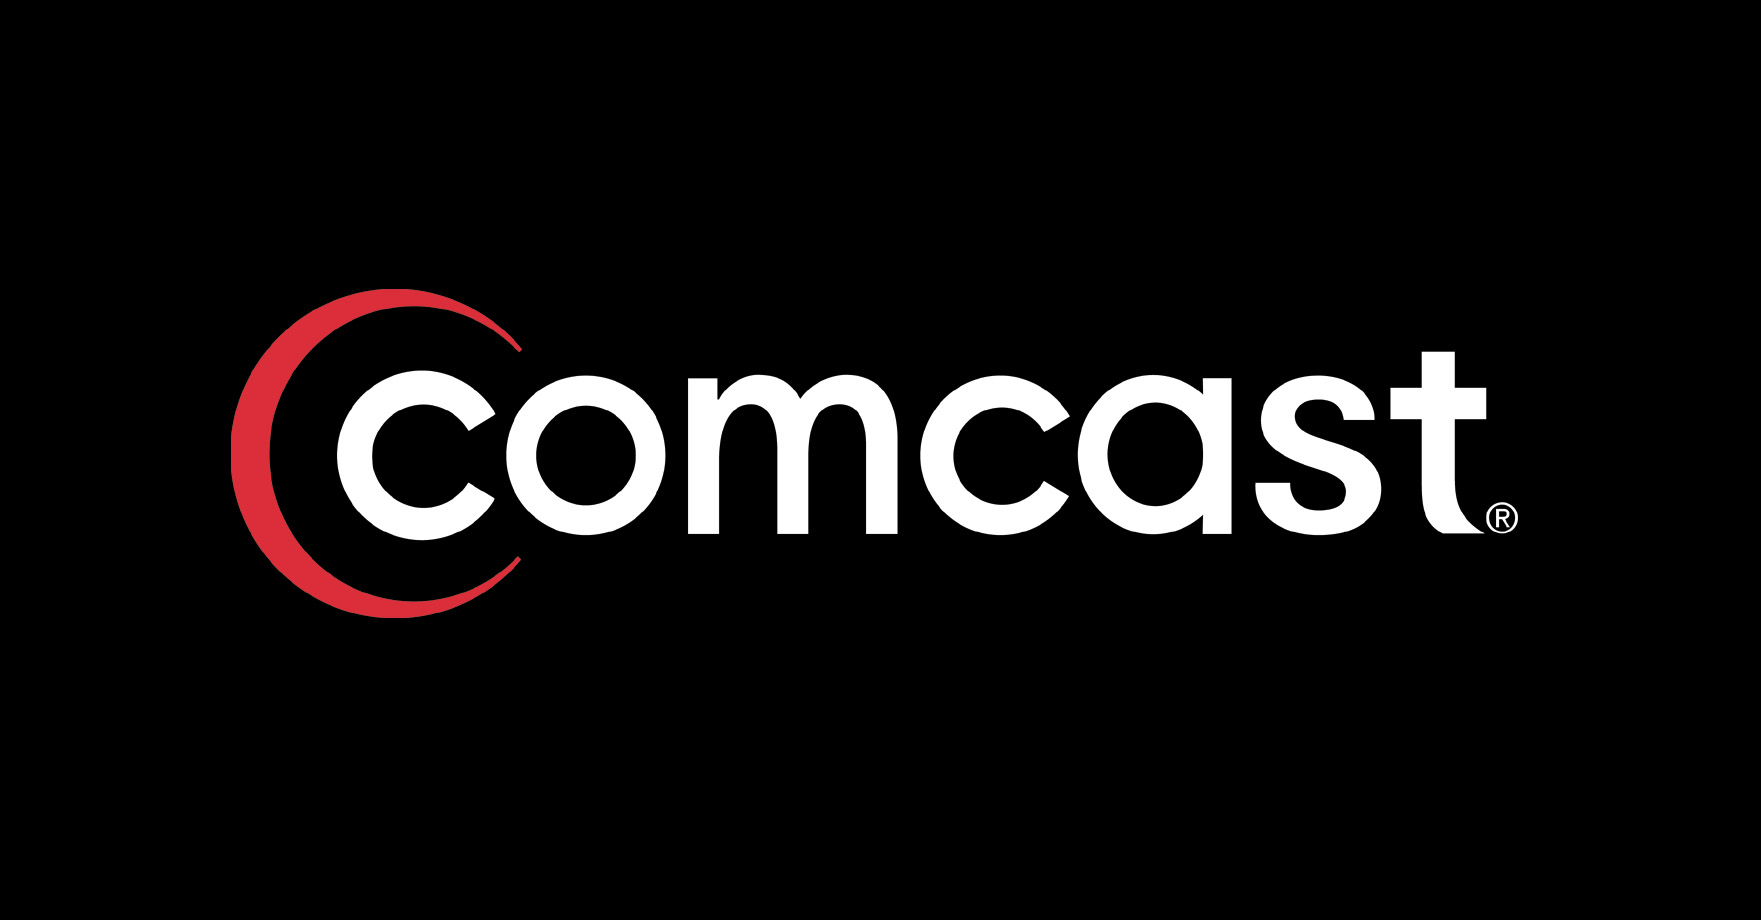 Comcast reportedly expanding into health care with ambient listening device